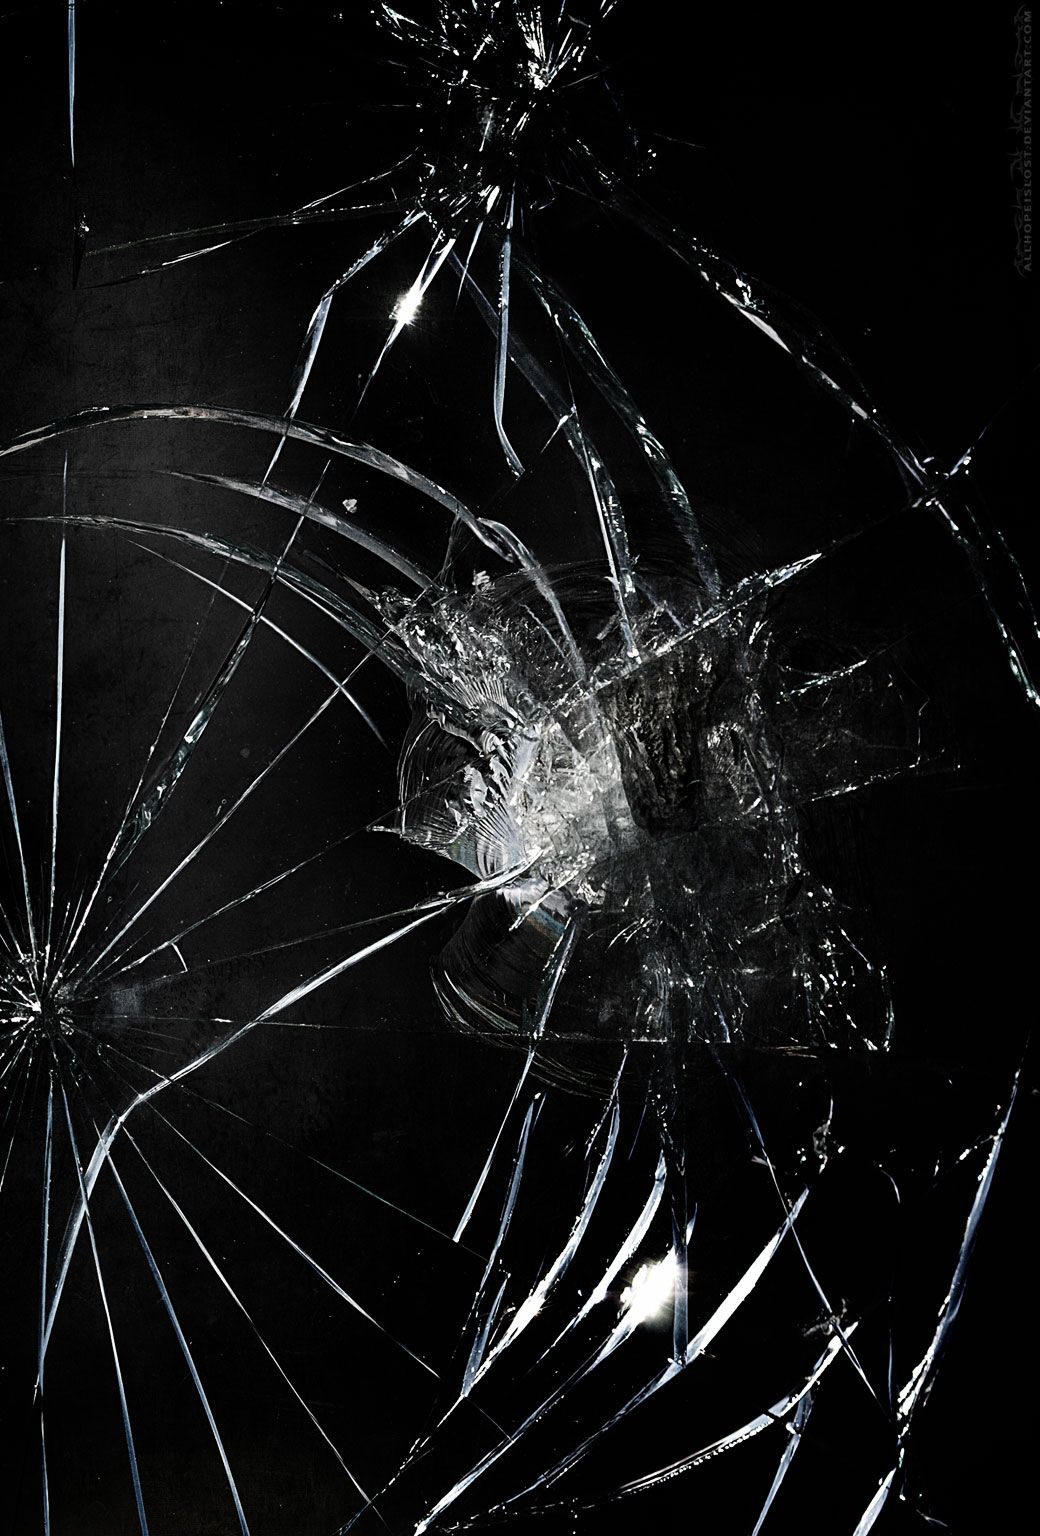 Free Cracked Screen Wallpaper Phone Beautiful Hd Wallpapers